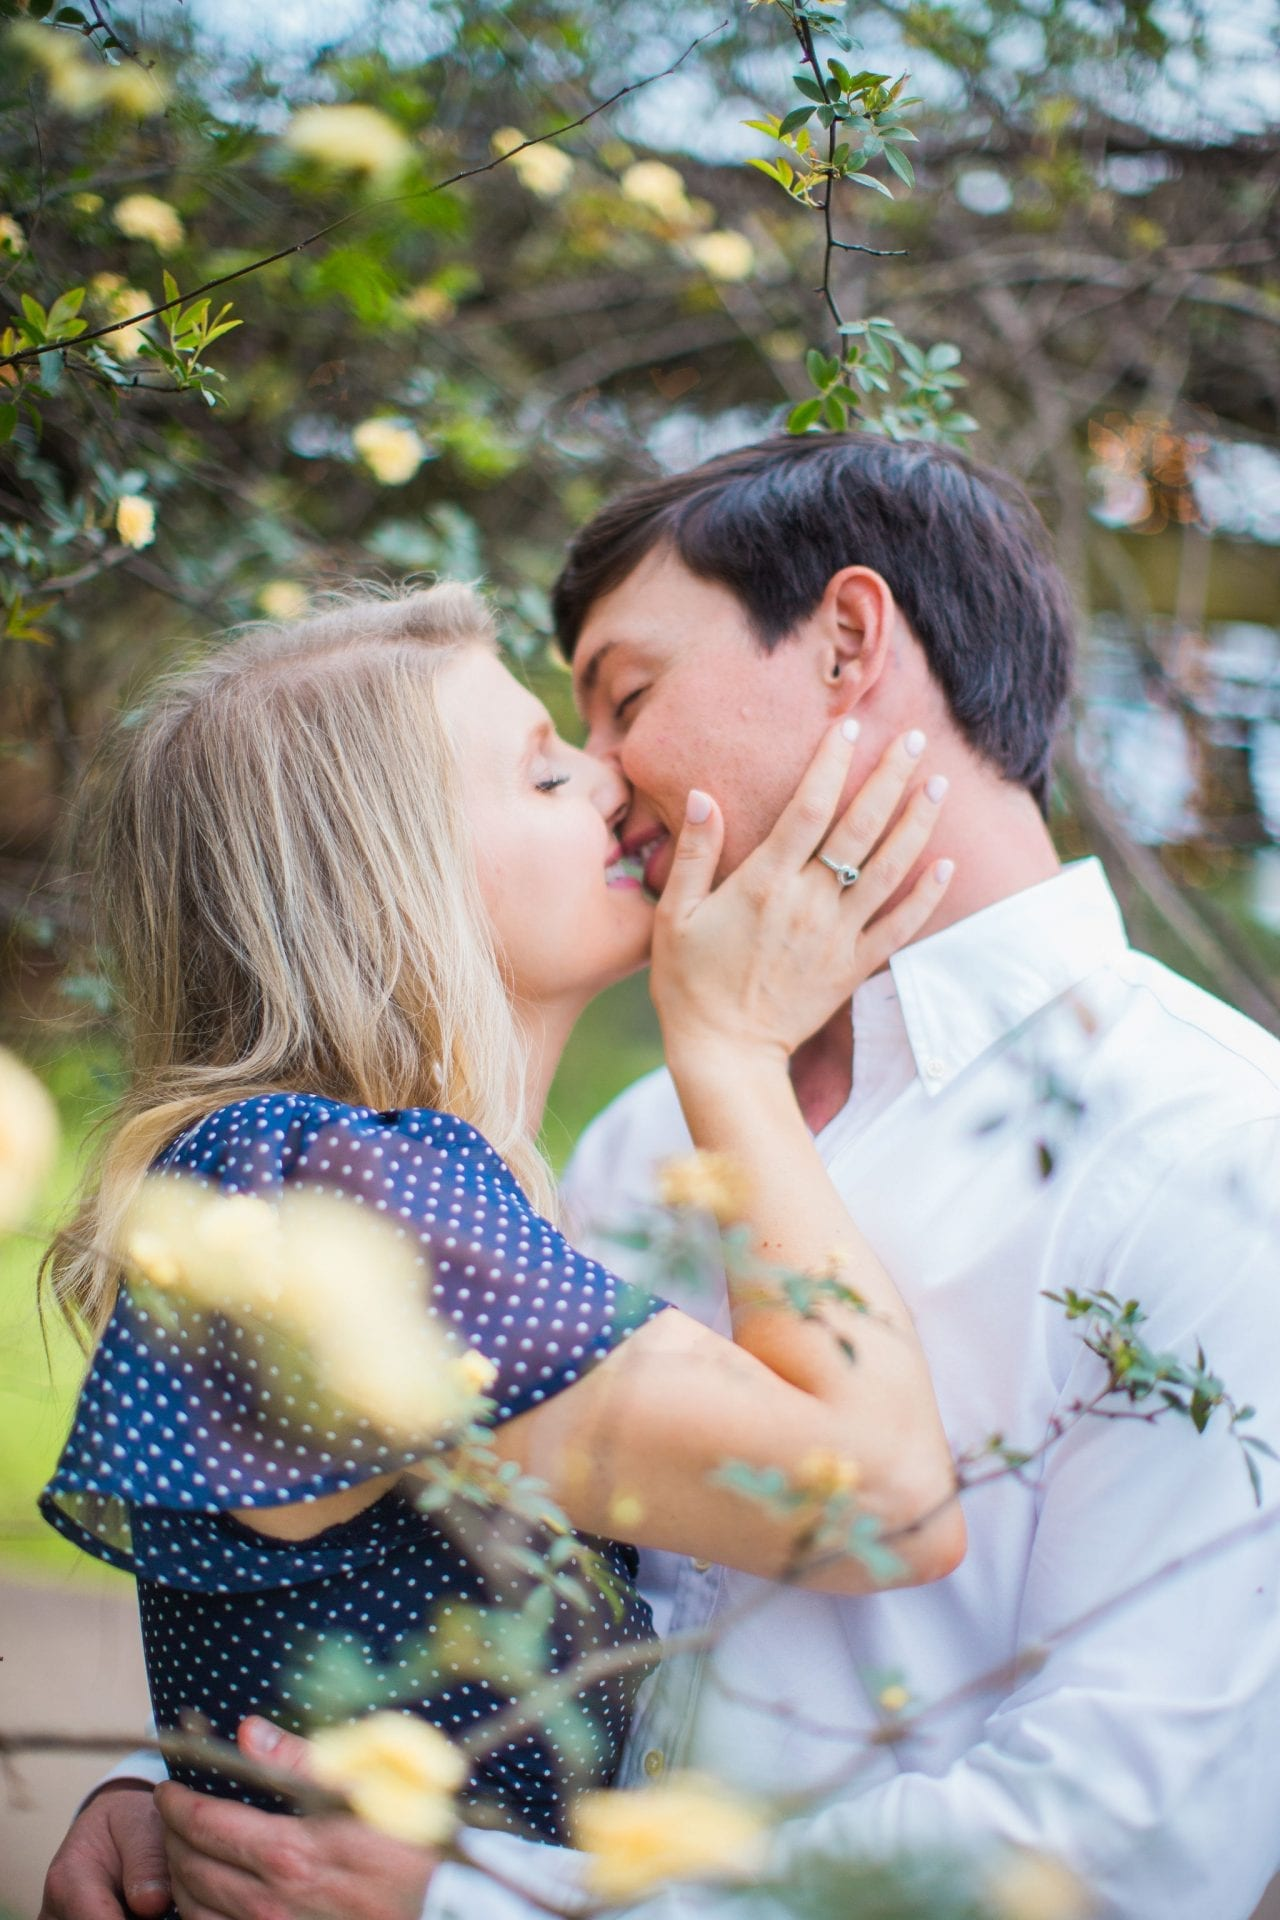 Michele Engagement session in the yellow flowers kissing at Oak Valley Vineyards